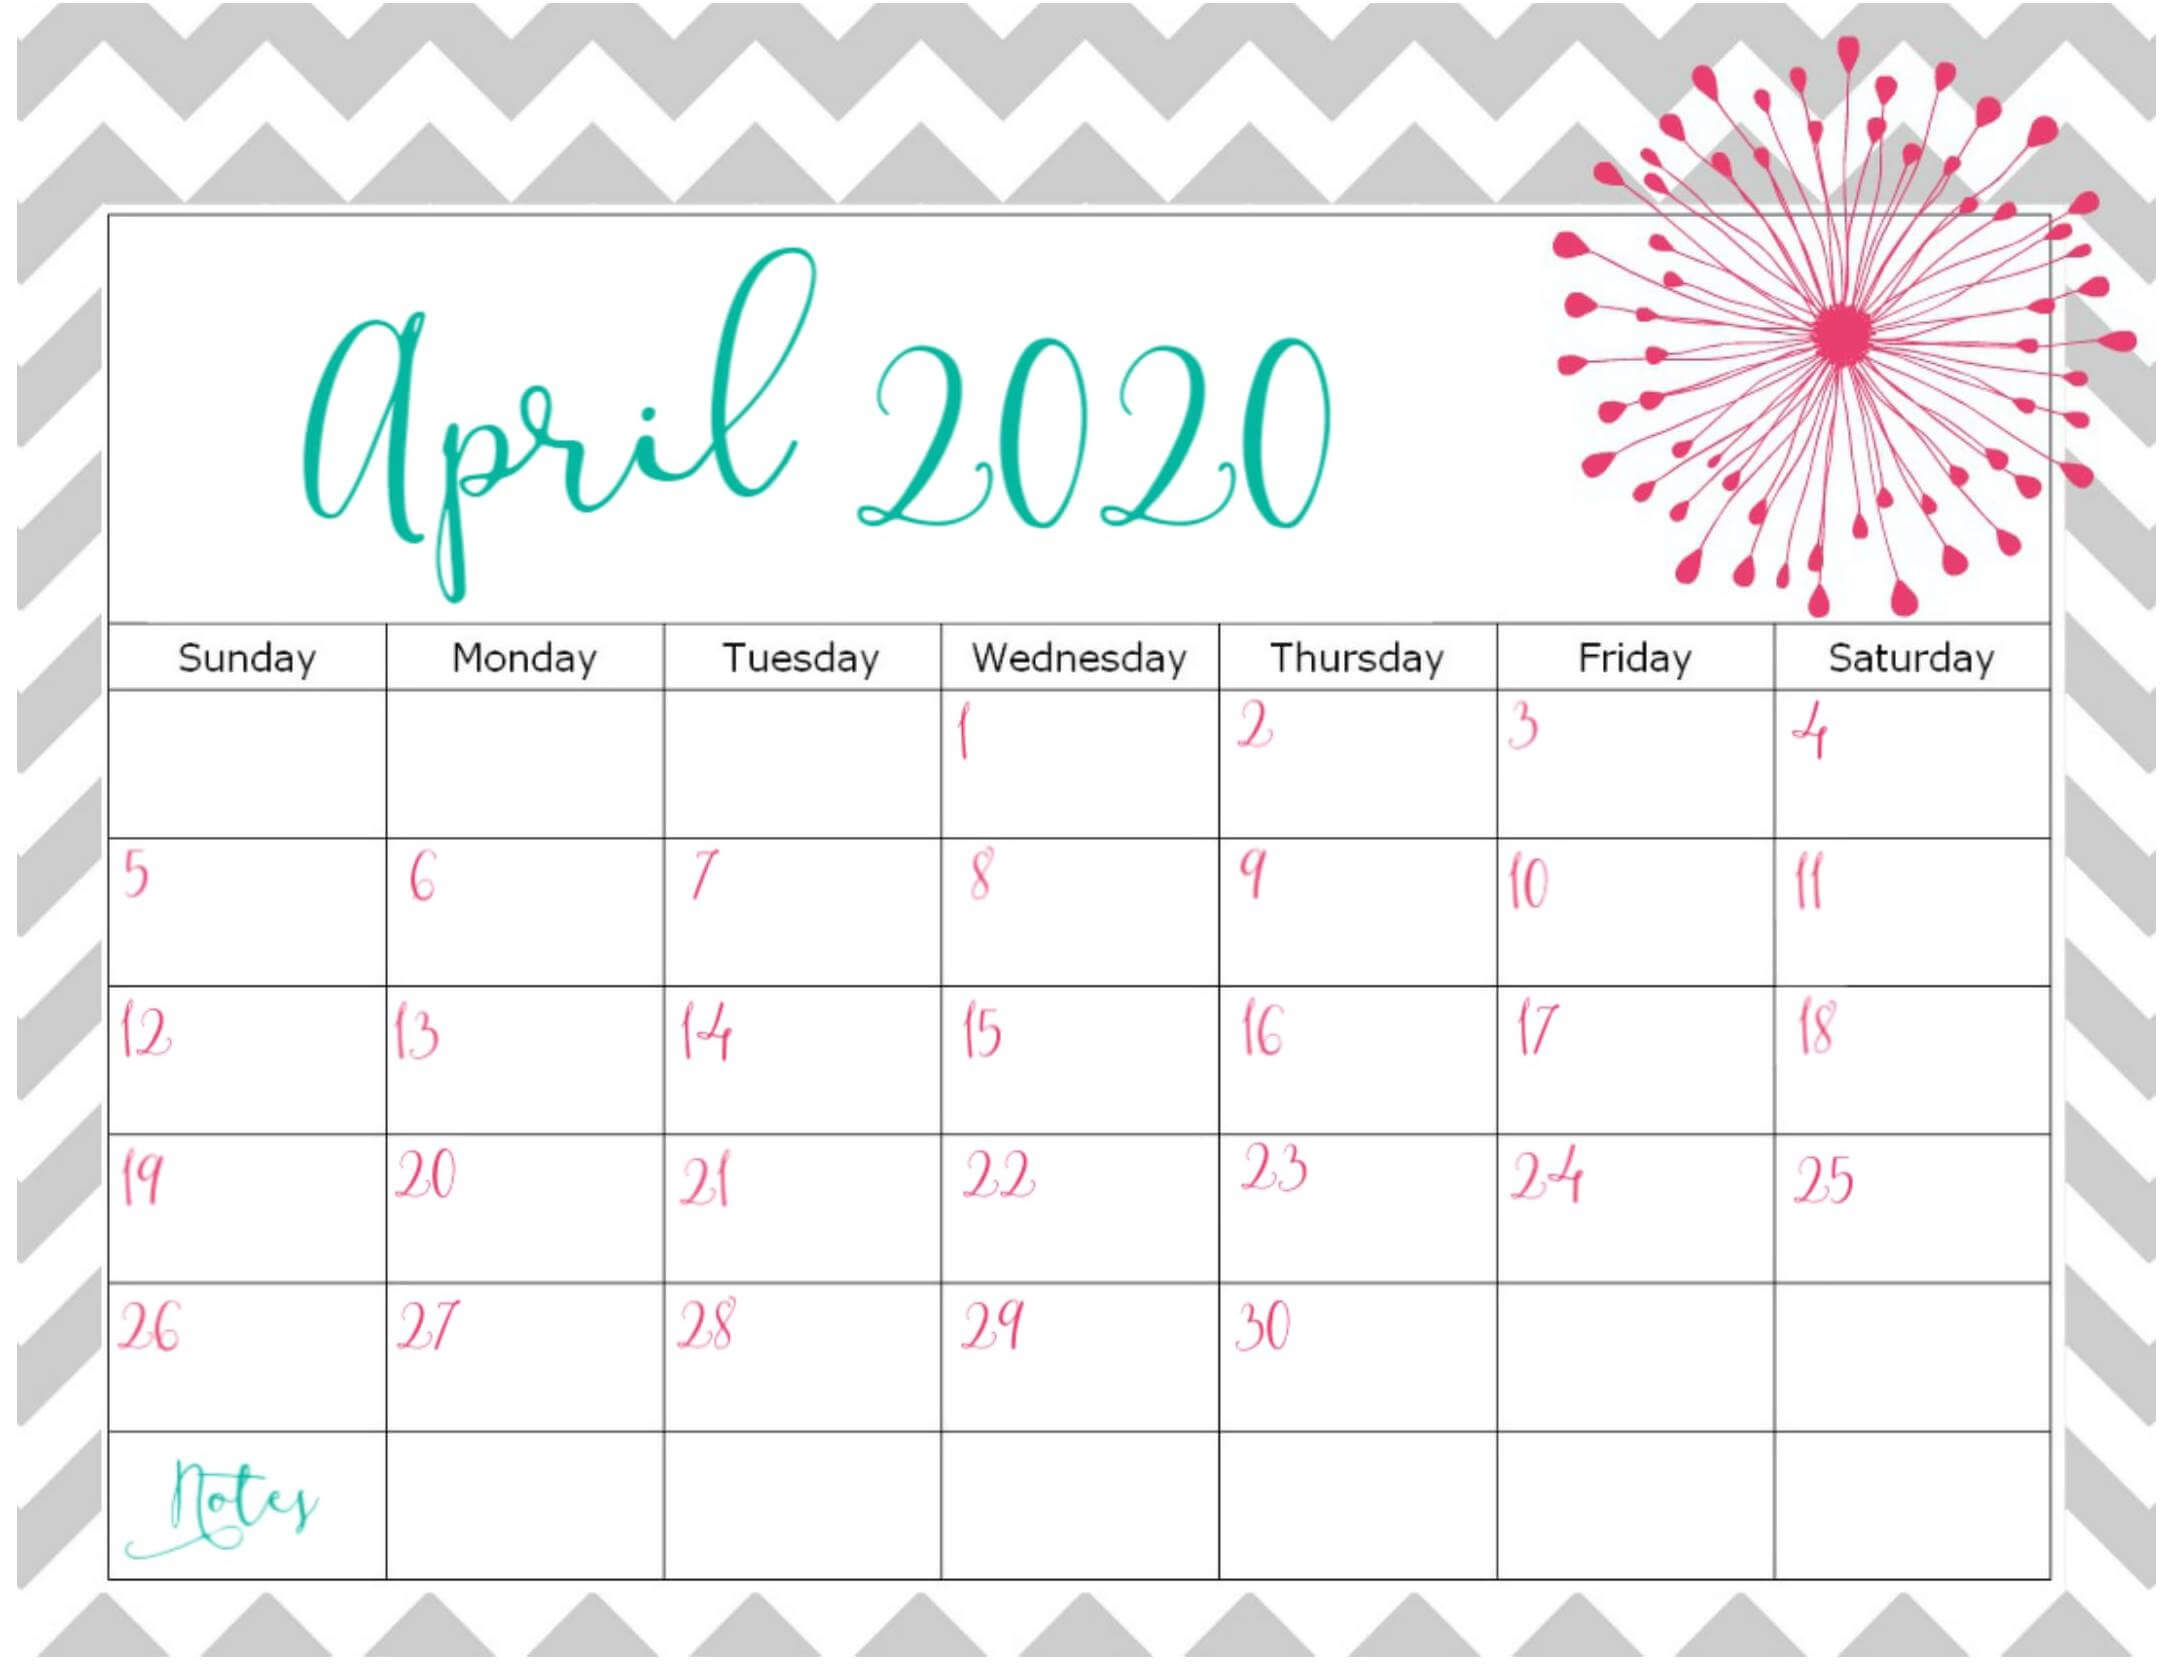 Cute April 2020 Calendar Design Printable With Notes